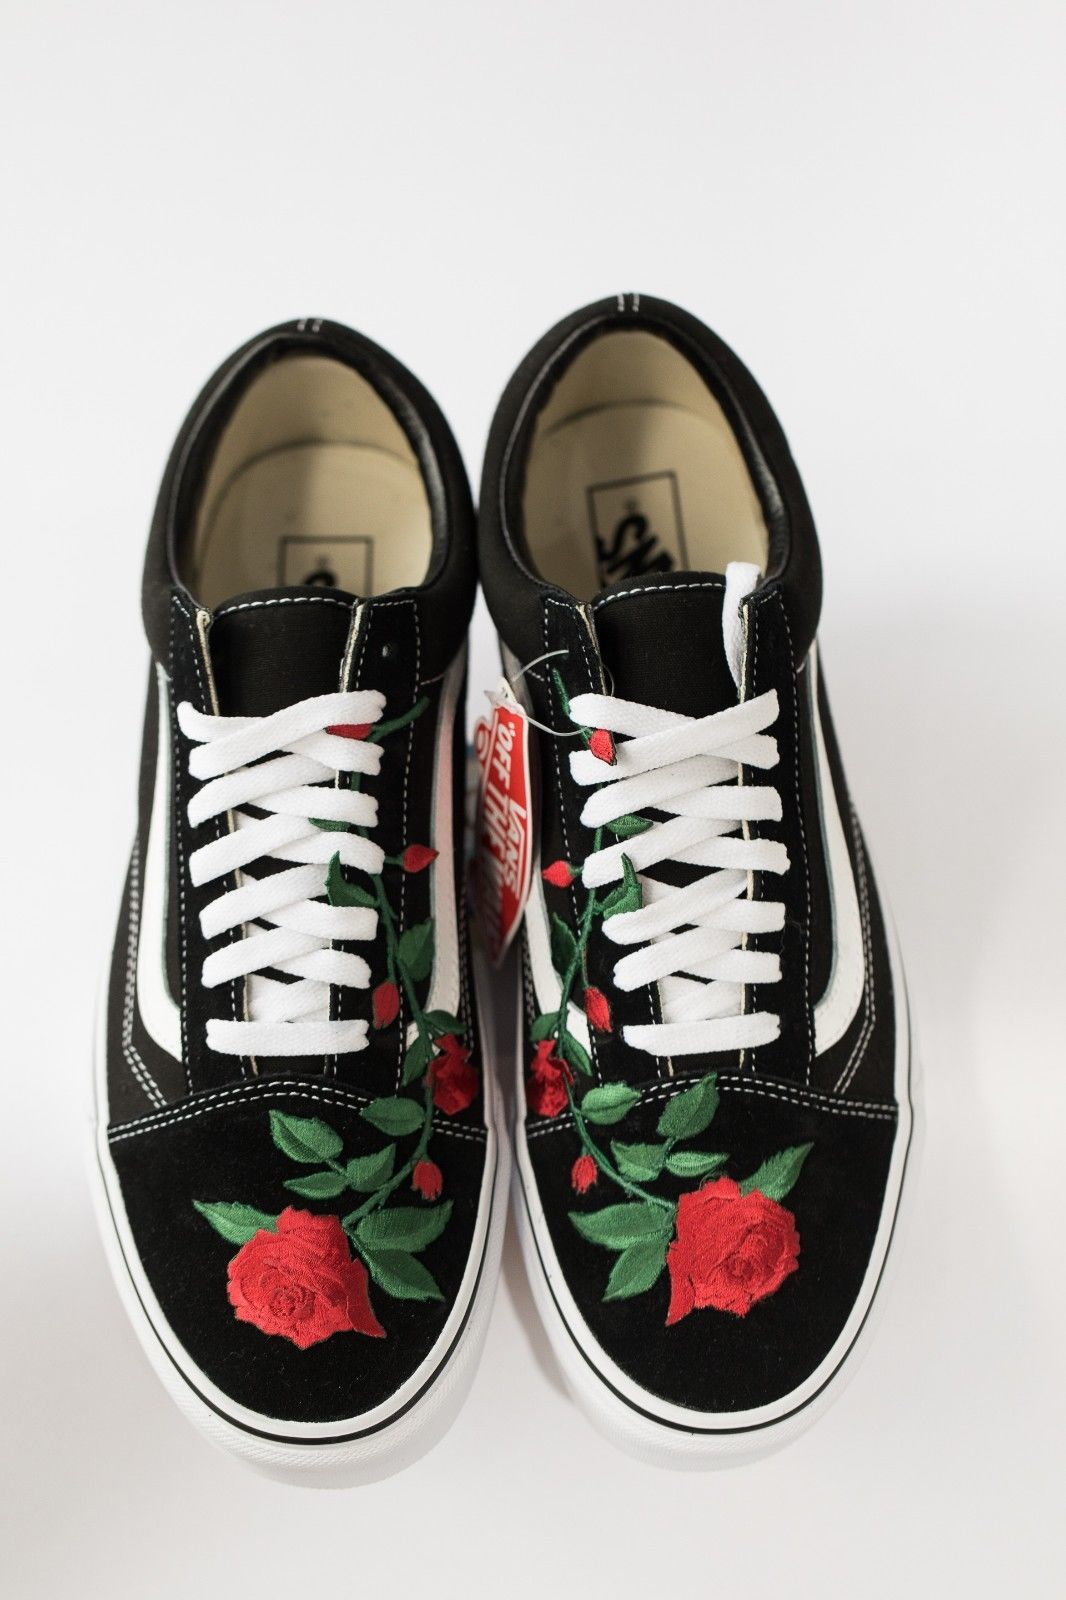 Vans Rose embroidered customs available in all sizes black and white image 6